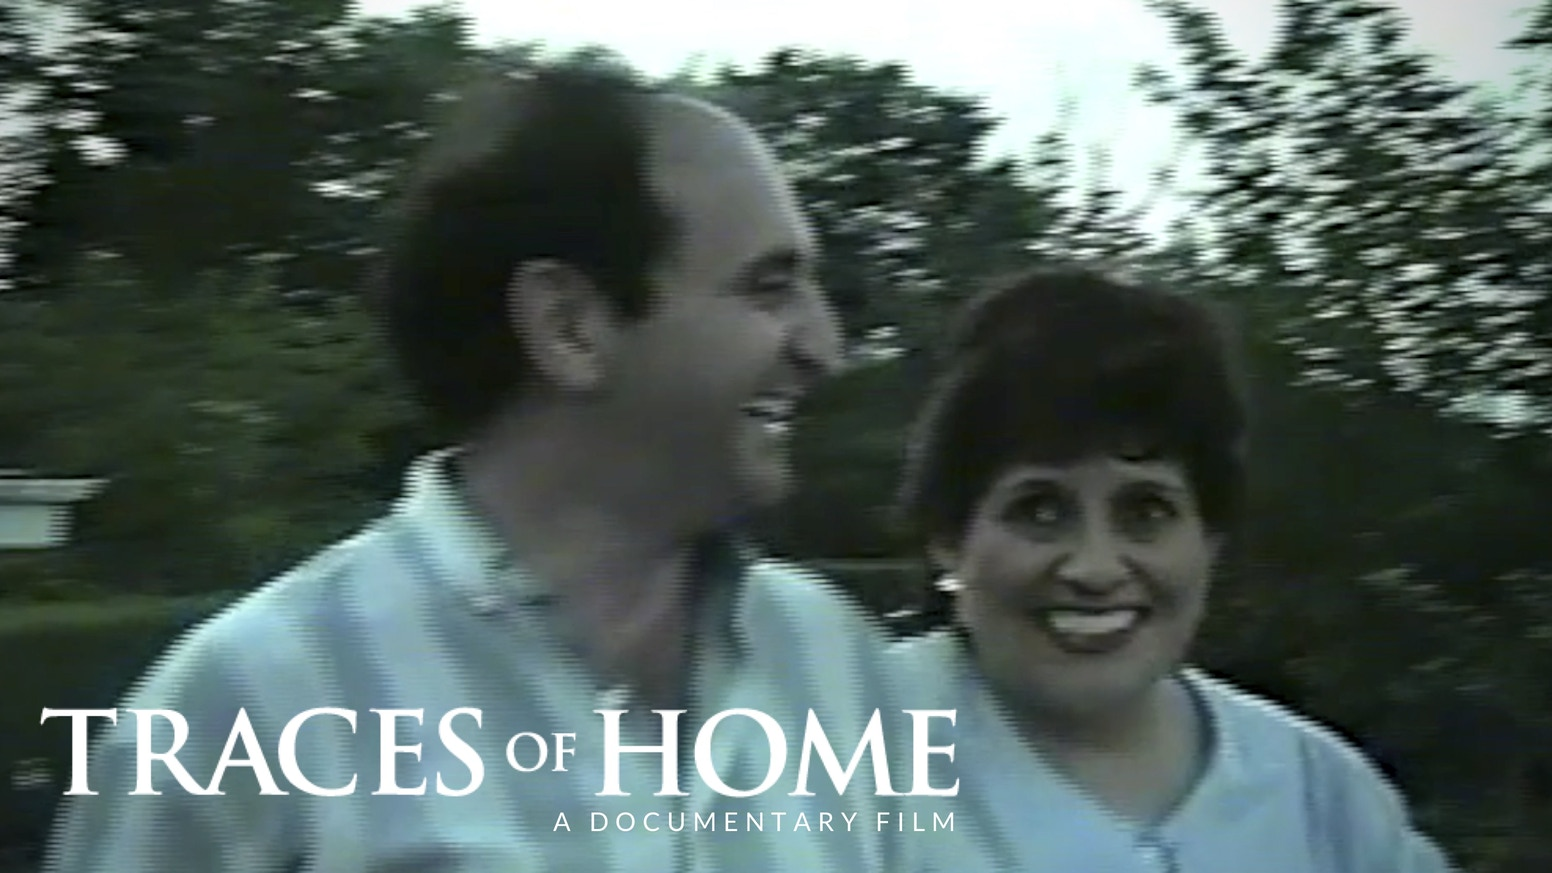 Traces of Home documents filmmaker Colette Ghunim's journey to find her parents' homes in Mexico and Palestine.